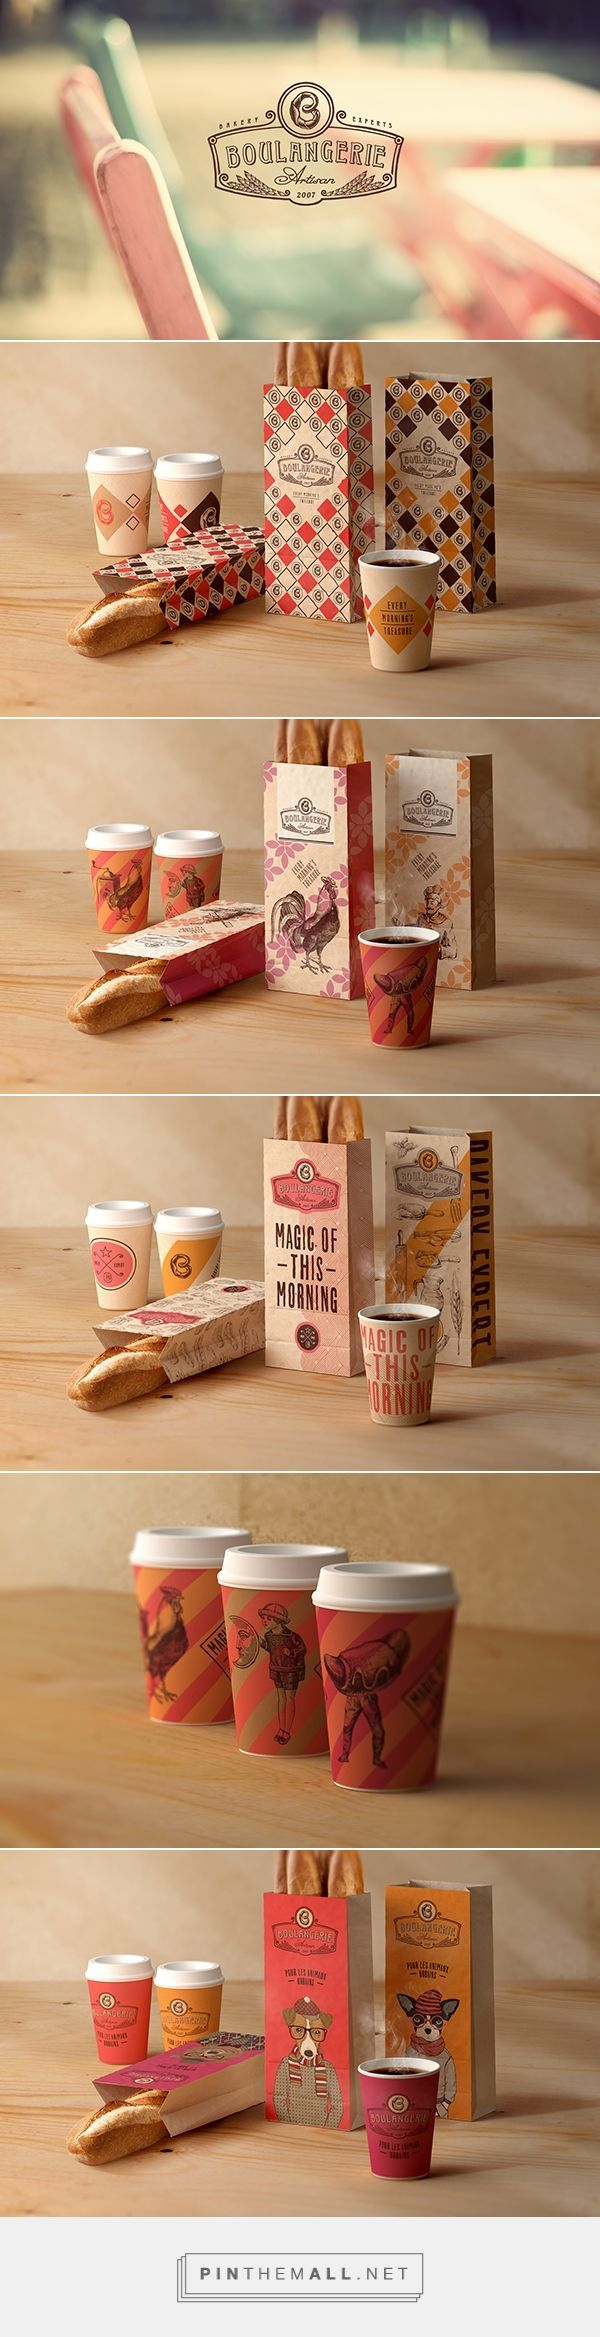 Branding, art direction, graphic design and packaging for Boulangerie ID by Tough Slate Design curated by Packaging Diva PD. A cozy identity for cafe-bakery with fresh morning coffee.